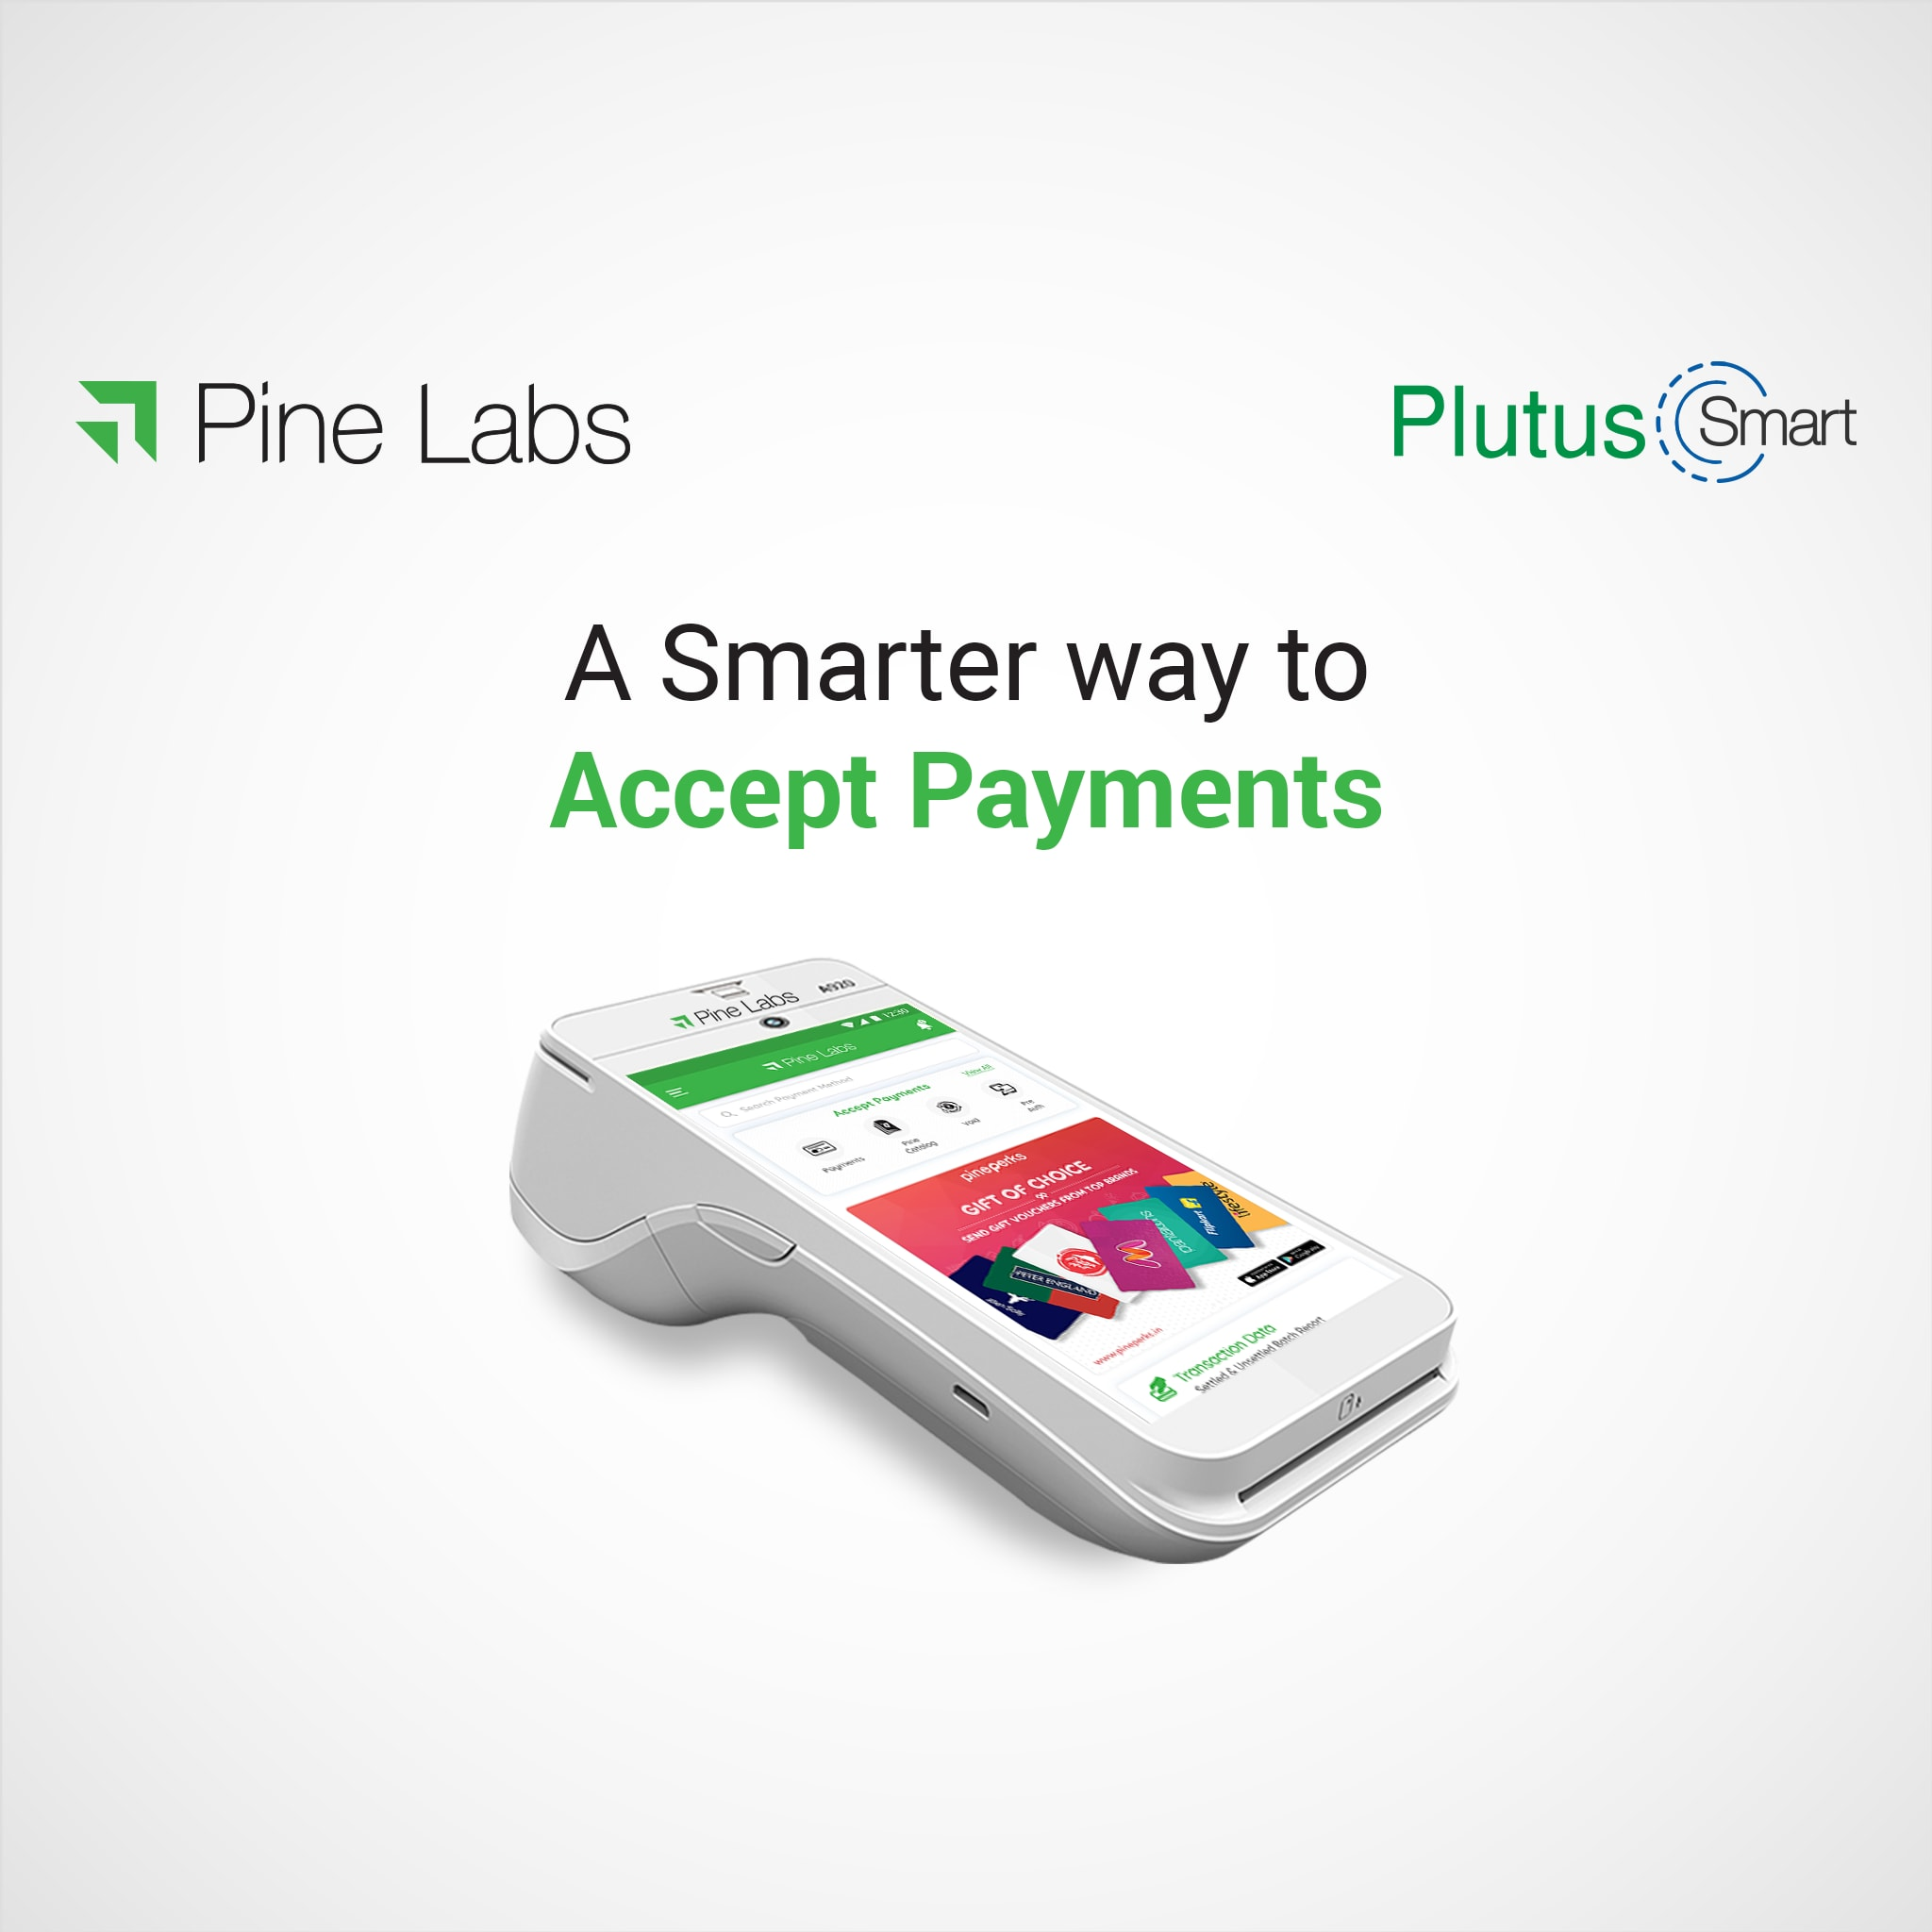 7. Pine Labs, Fintech: Funds Raised: $207 million. Pine Labs, with its cloud-based, unified point-of-sale (POS) platform, focuses on creating a product and services platform that widens access, accelerates commerce and automation for merchants in local markets. The company has a presence in 3,700 cities and towns across India and Malaysia and other parts of Asia. (Image: Company)